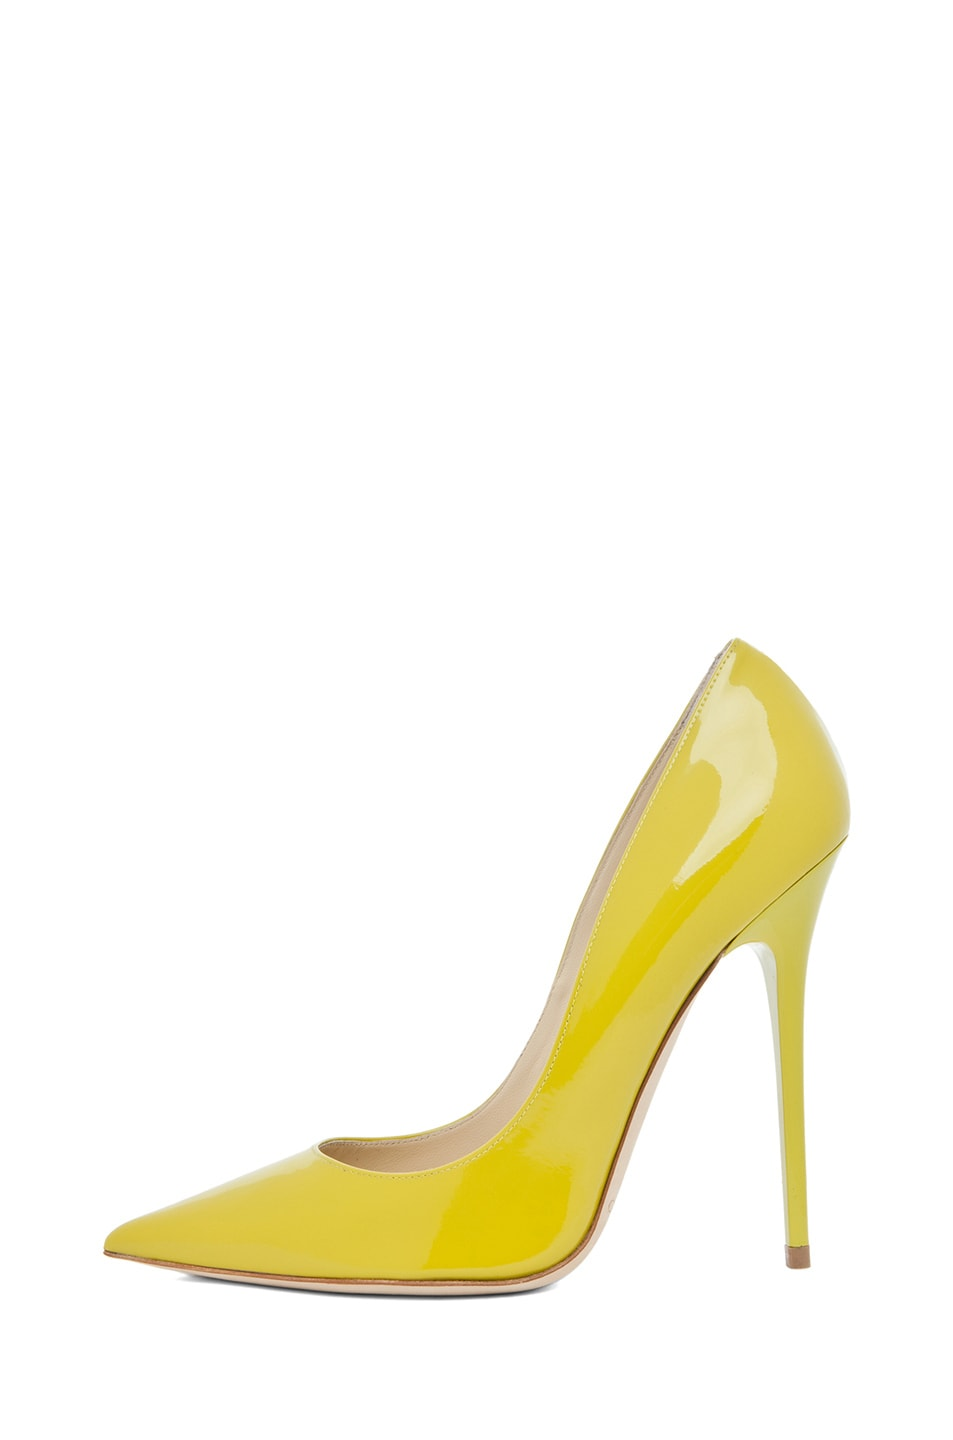 Image 1 of Jimmy Choo Anouk Pump in Citrine